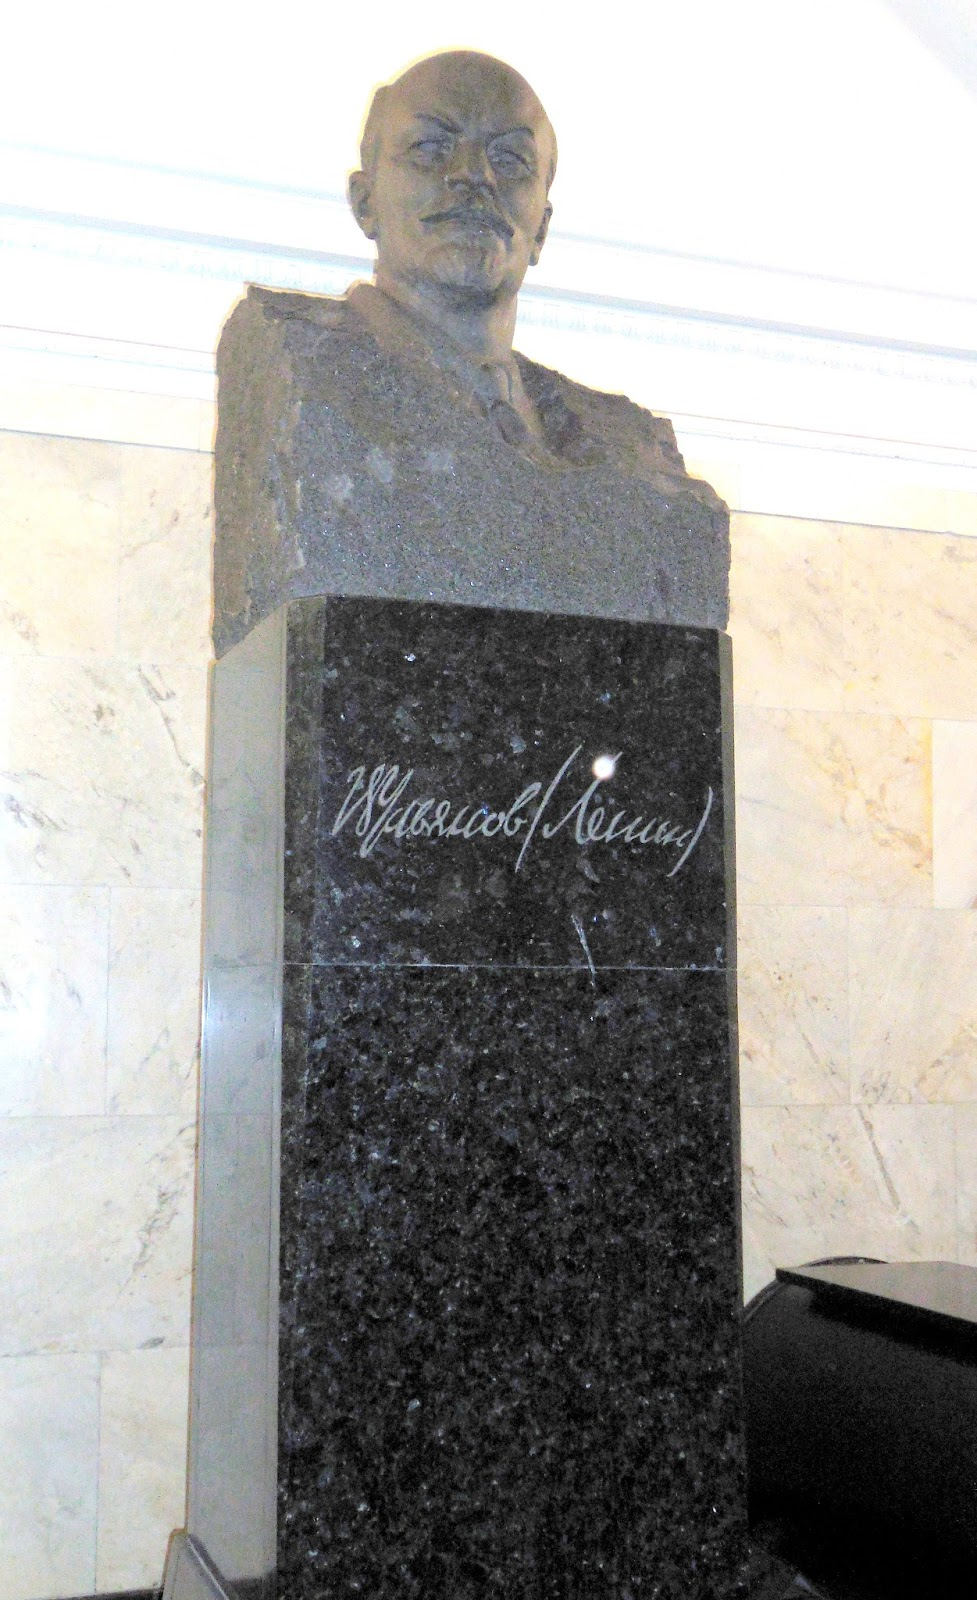 lenin belorusskaya station moscow metro russia located now next to a trash can